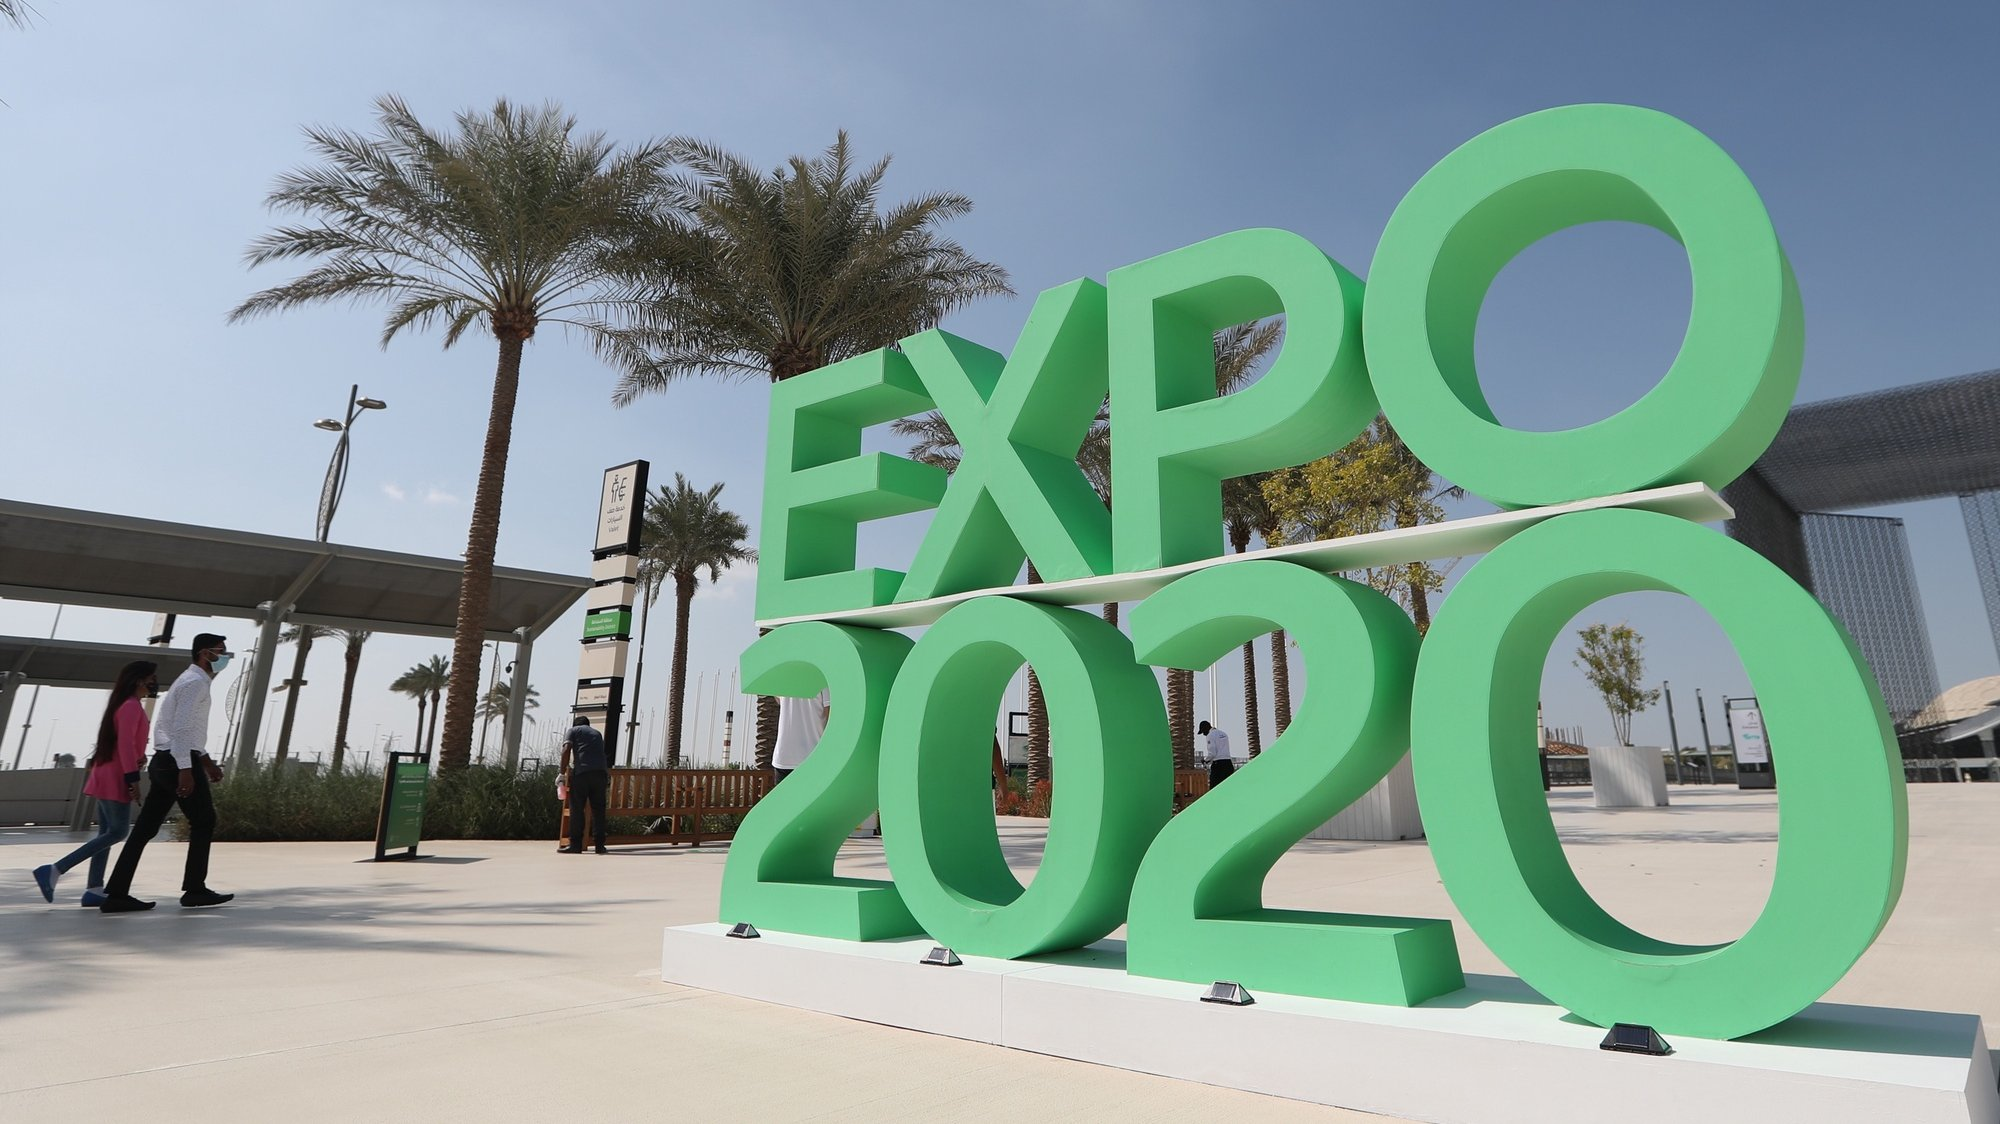 epa08986653 People walk at the building of Terra the Sustainability Pavilion at Expo 2020 Dubai site, Dubai, United Arab Emirates, 27 January 2021 (issued 04 February 2021). Terra, the Sustainability Pavilion, has been opened to the public, ahead of the Expo 2020 official opening scheduled for 01 October after it was postponed from October 2020 due to the COVID 19 pandemic.  EPA/ALI HAIDER